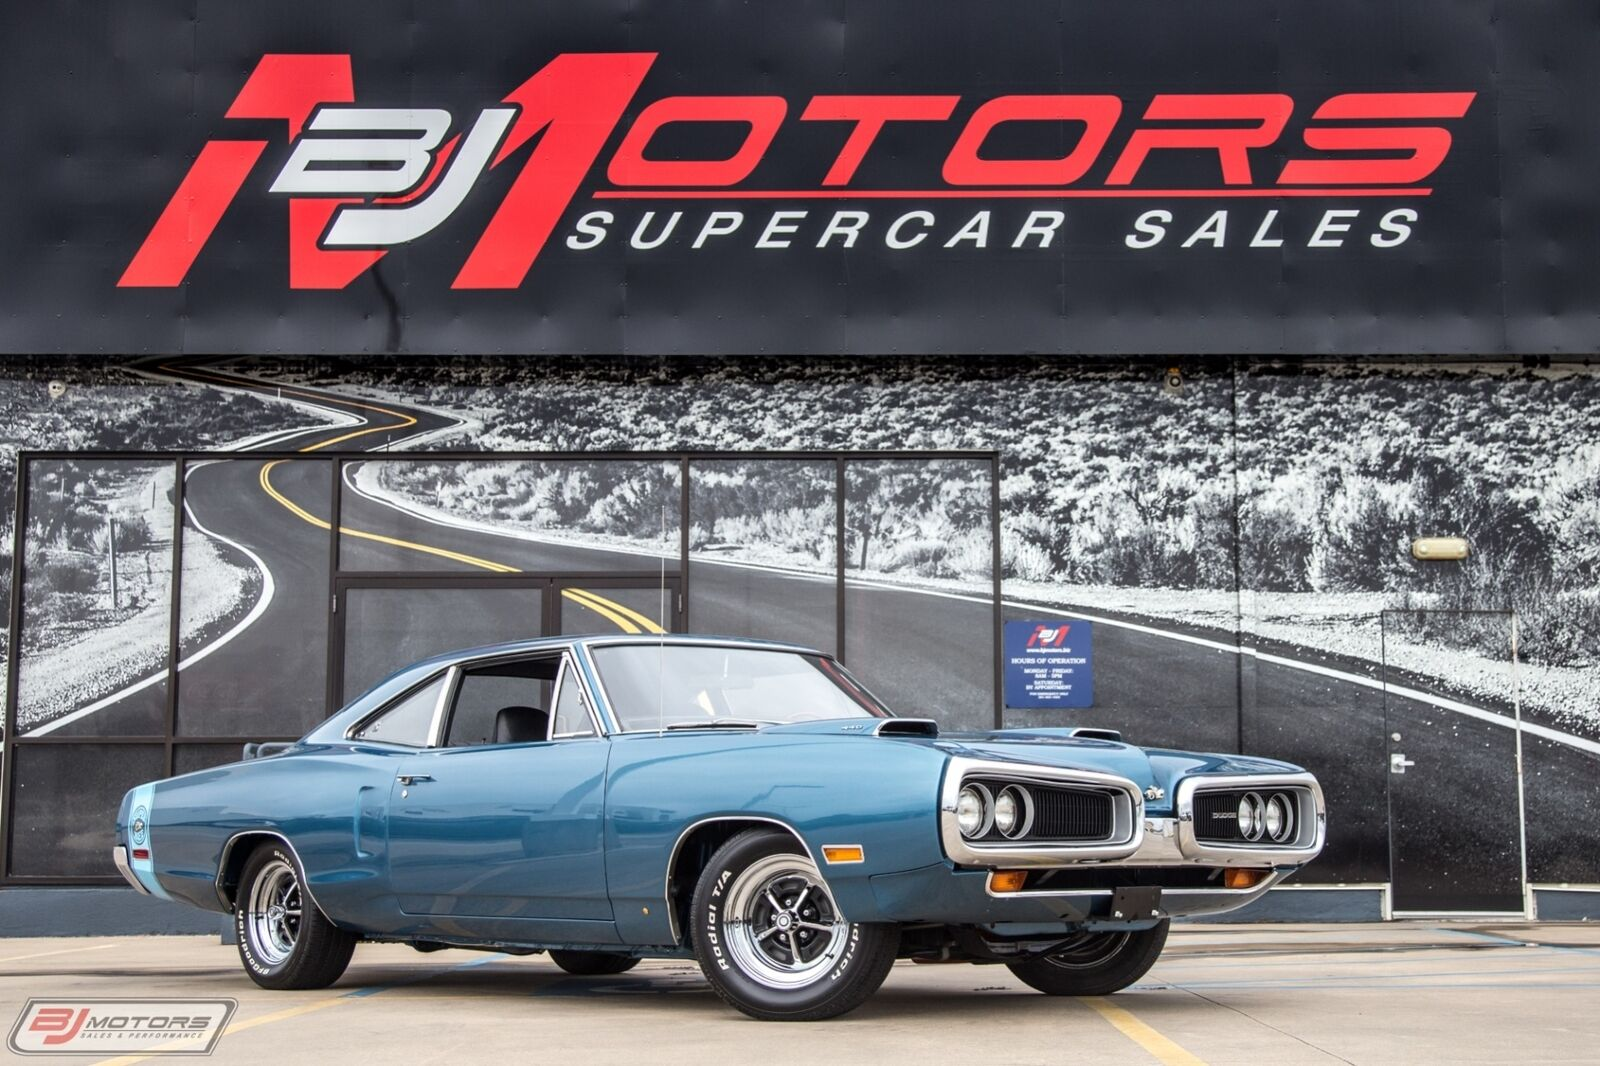 1970 Dodge Coronet Superbee BJ Motors, LLC , Houston Texas  - We Buy and Sell Exotics!!!!! #1 Viper Dealer